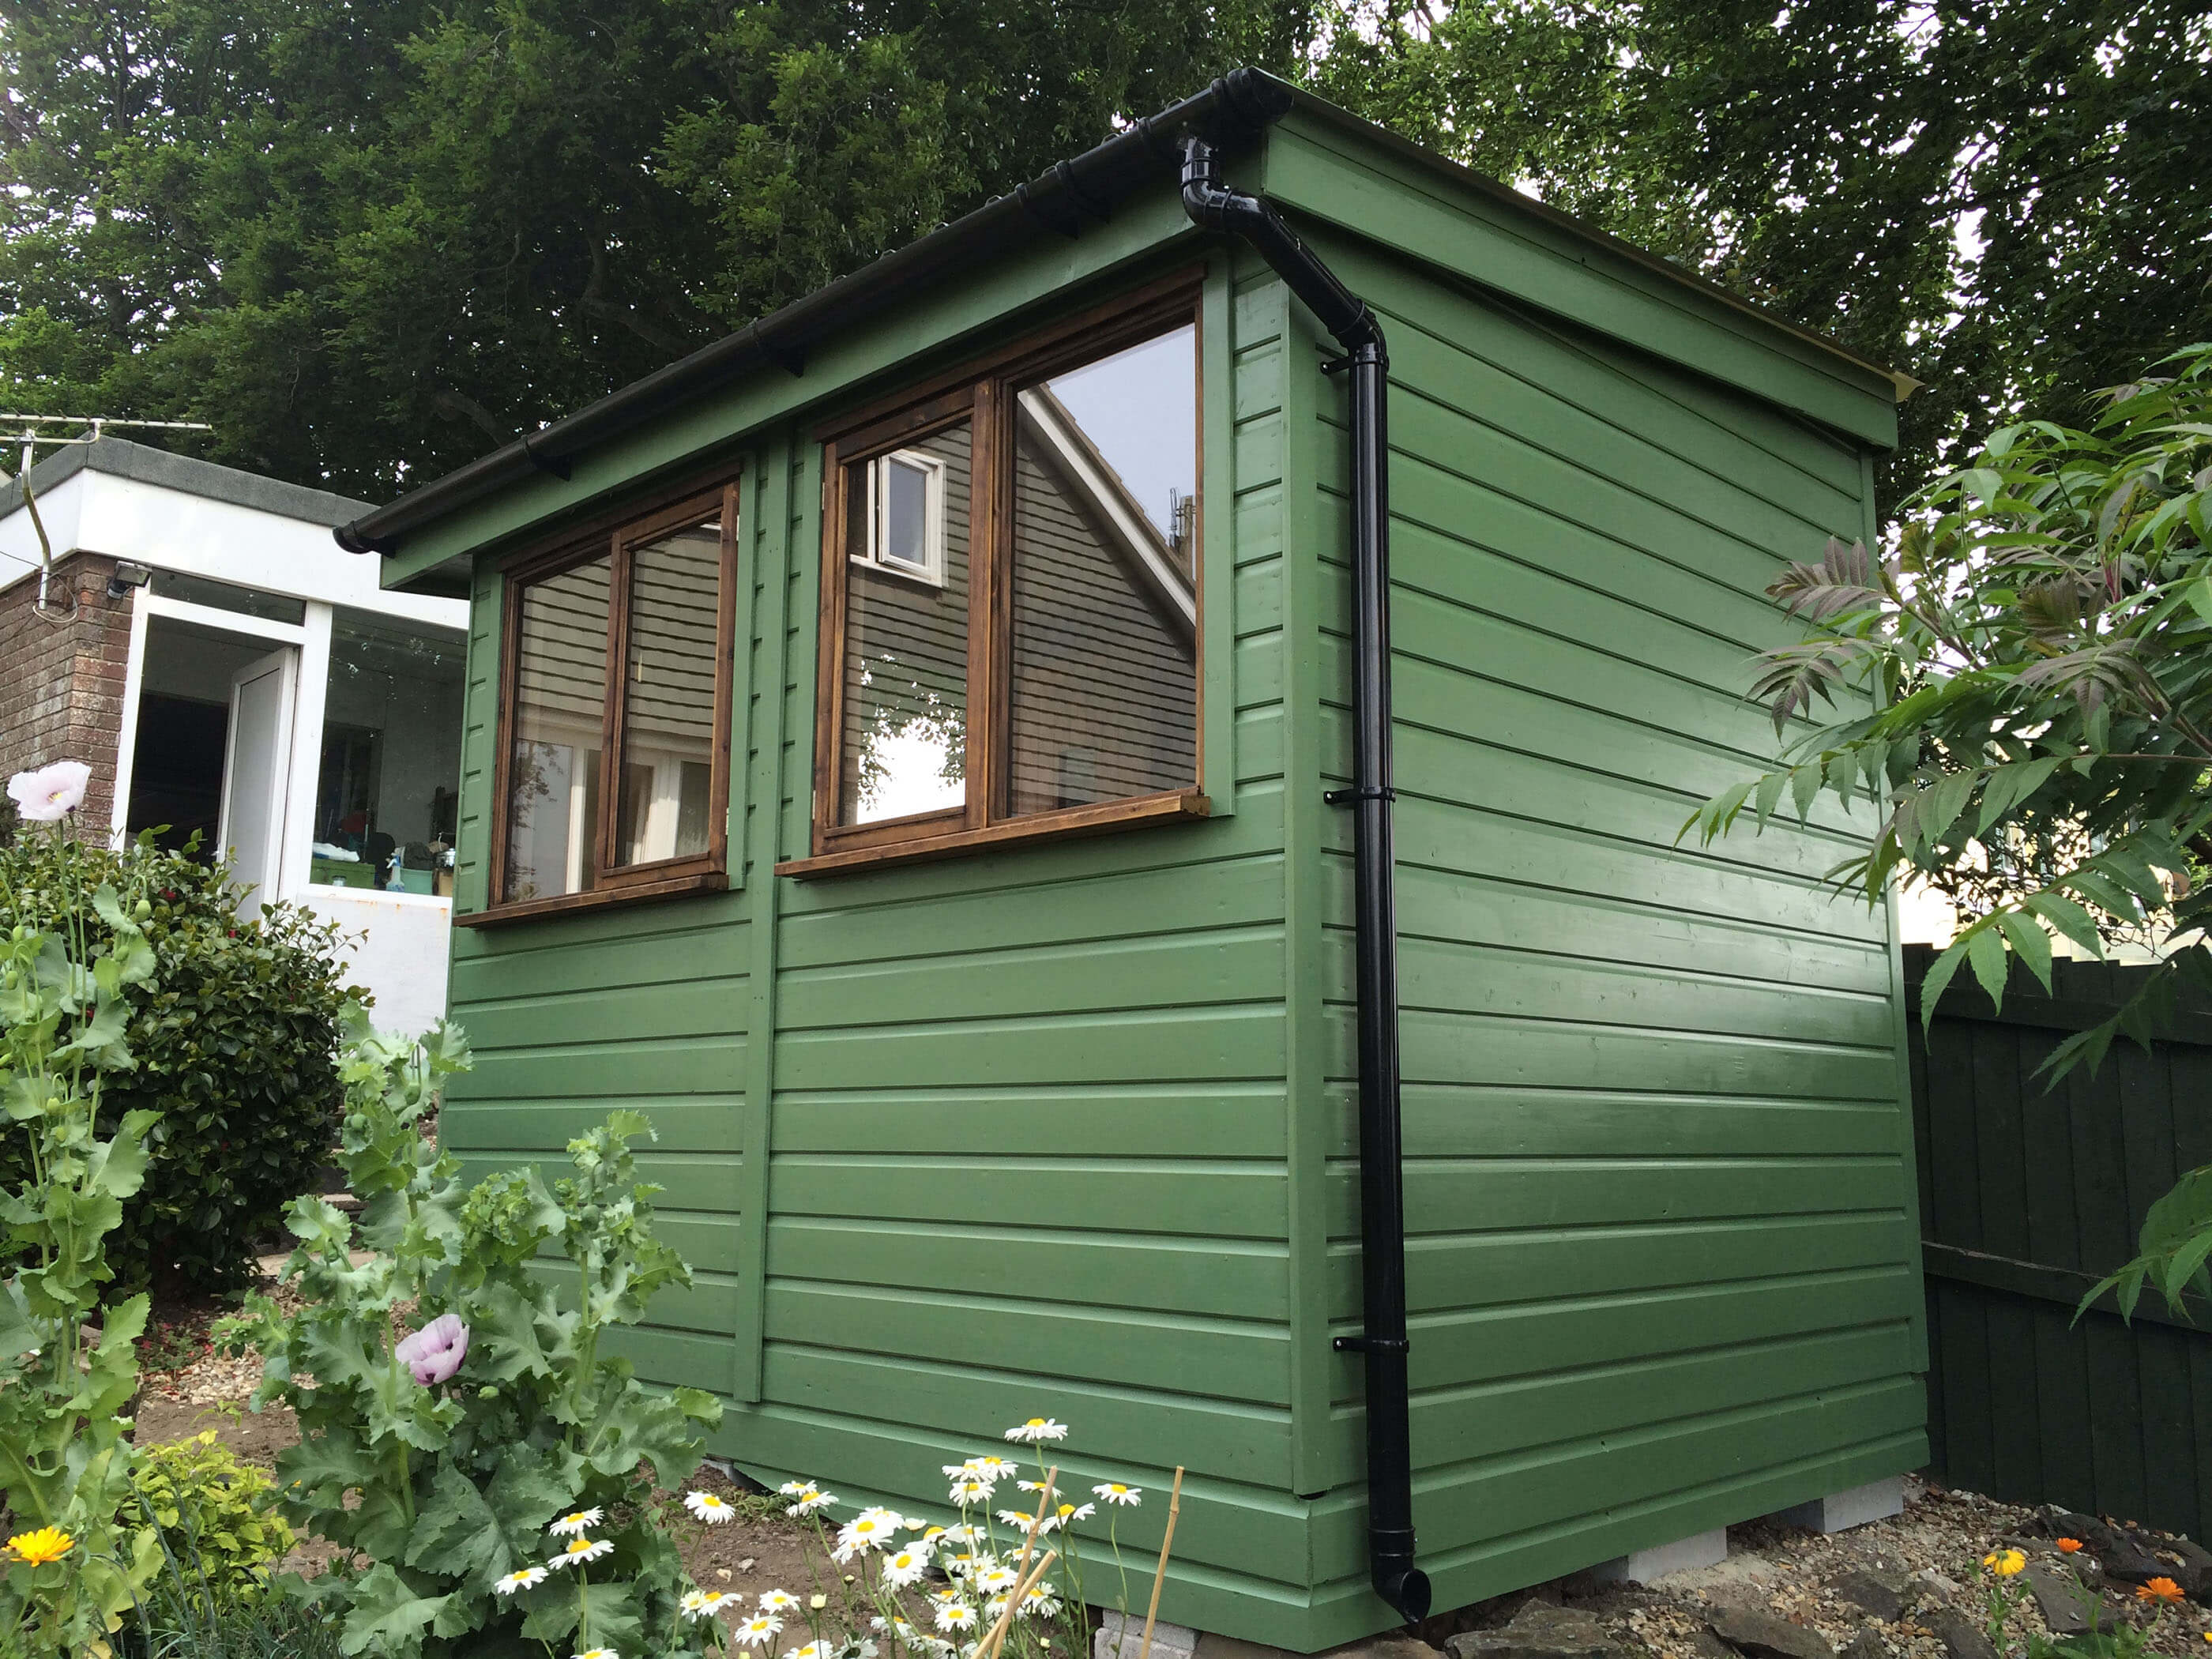 Small green garden office with pent roof